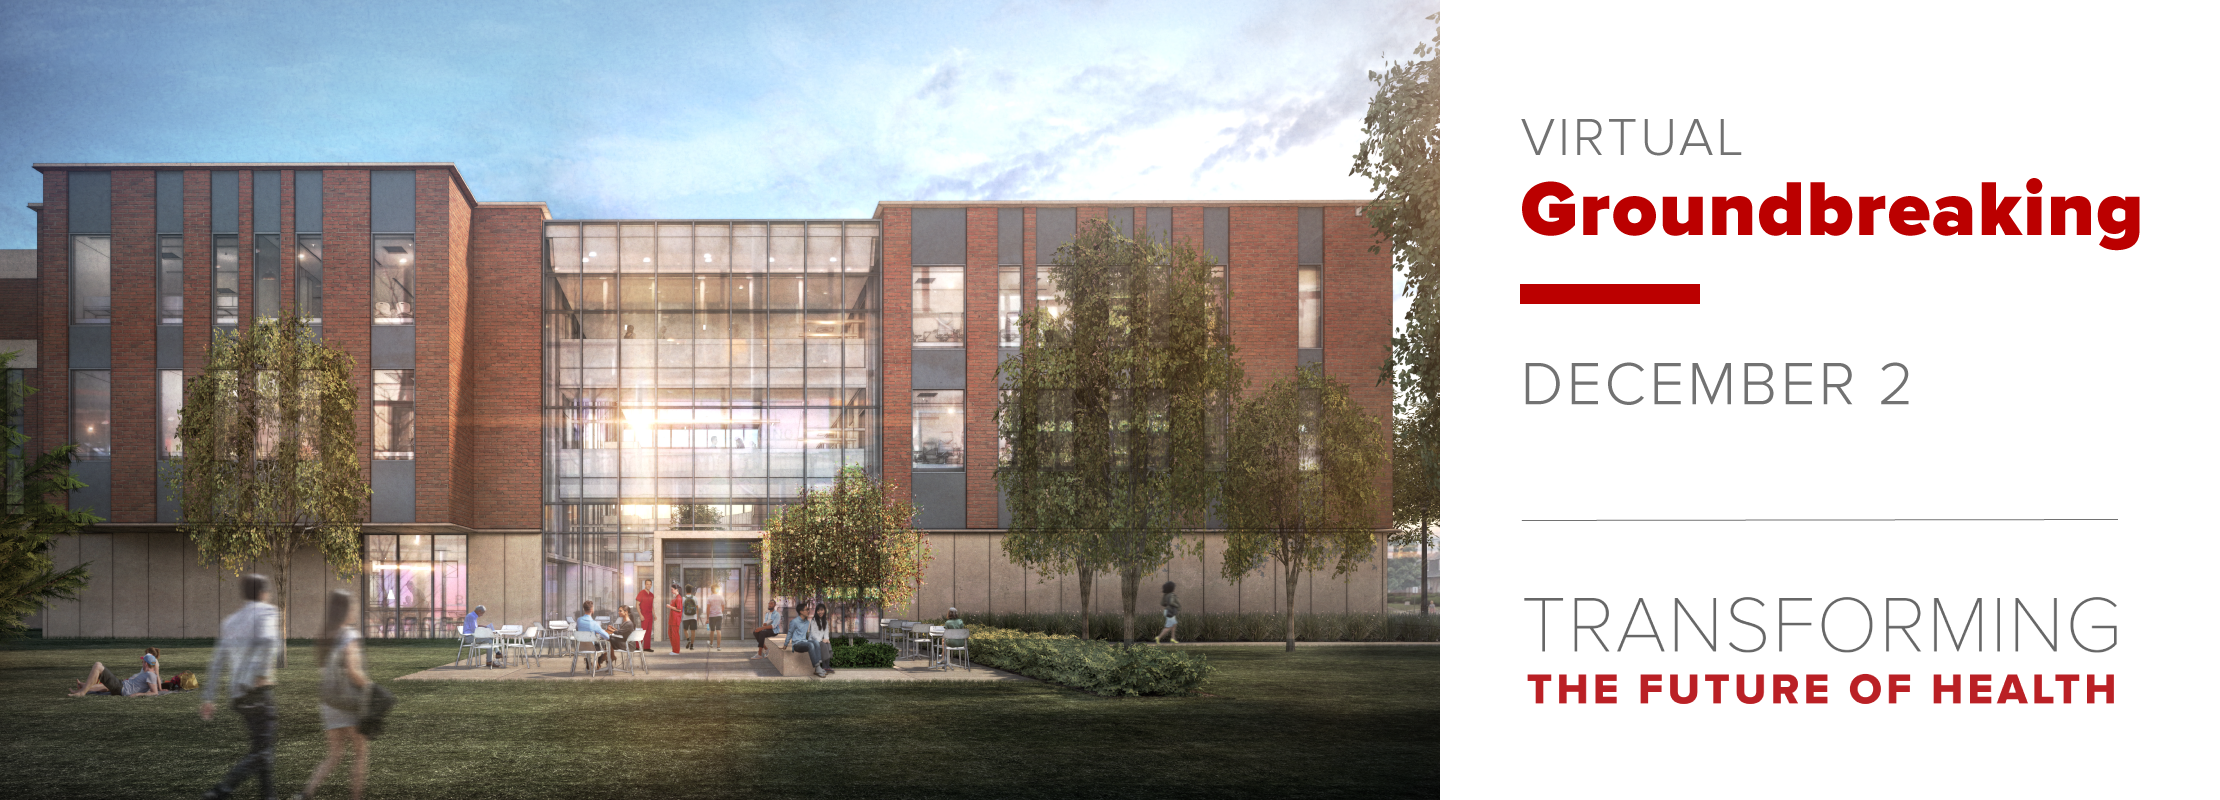 rendering of Newton Hall Addition | Virtual Groundbreaking | December 2 | Transforming the Future of Health